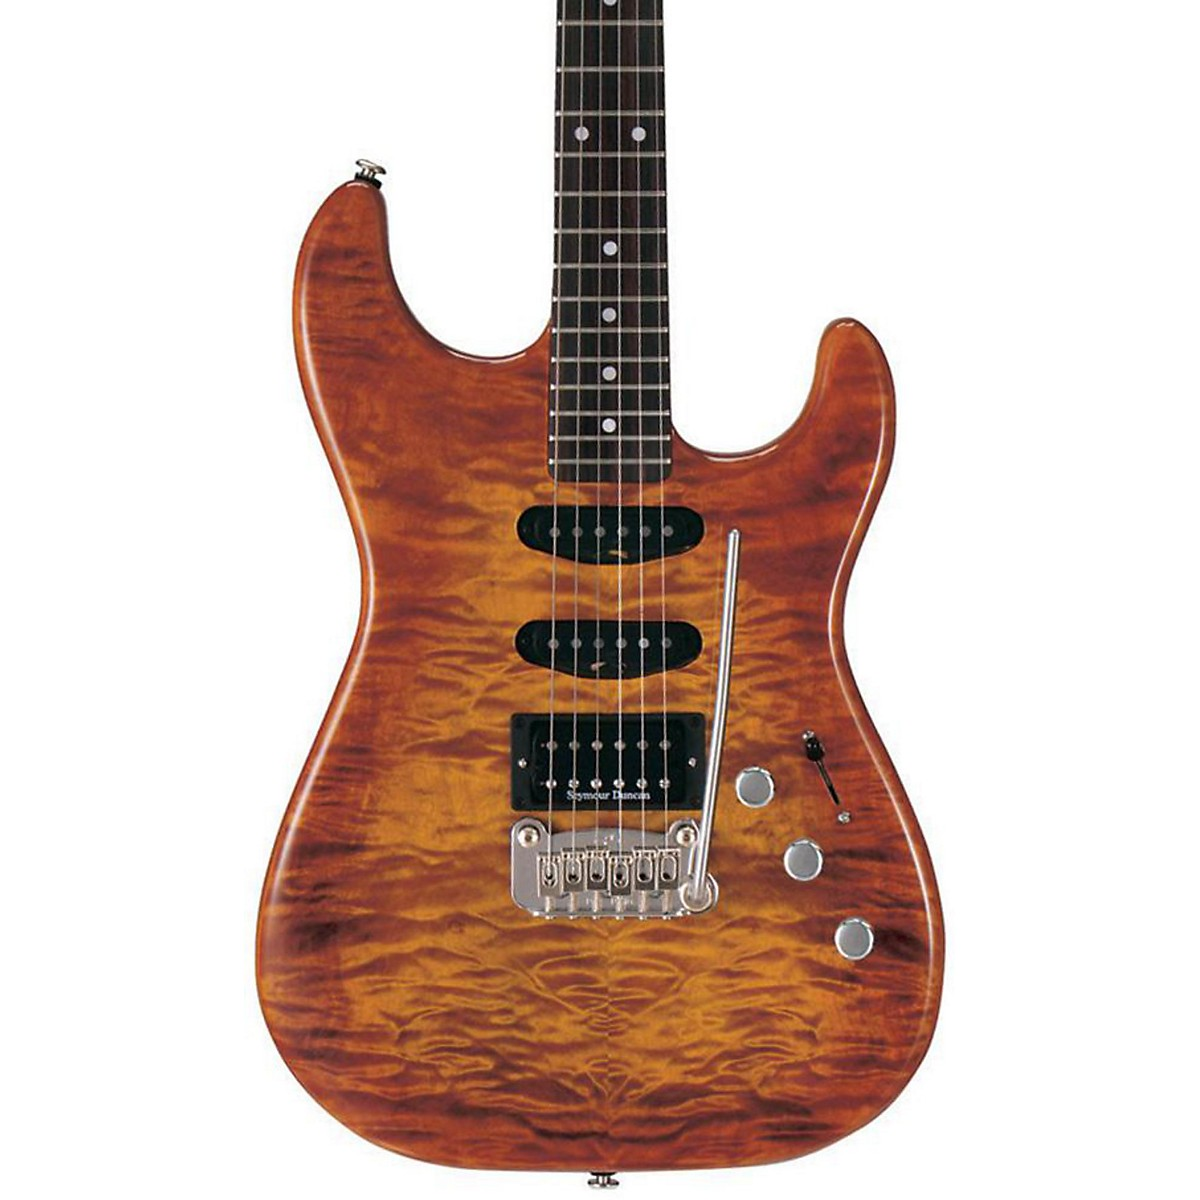 G&L Legacy Deluxe Electric Guitar